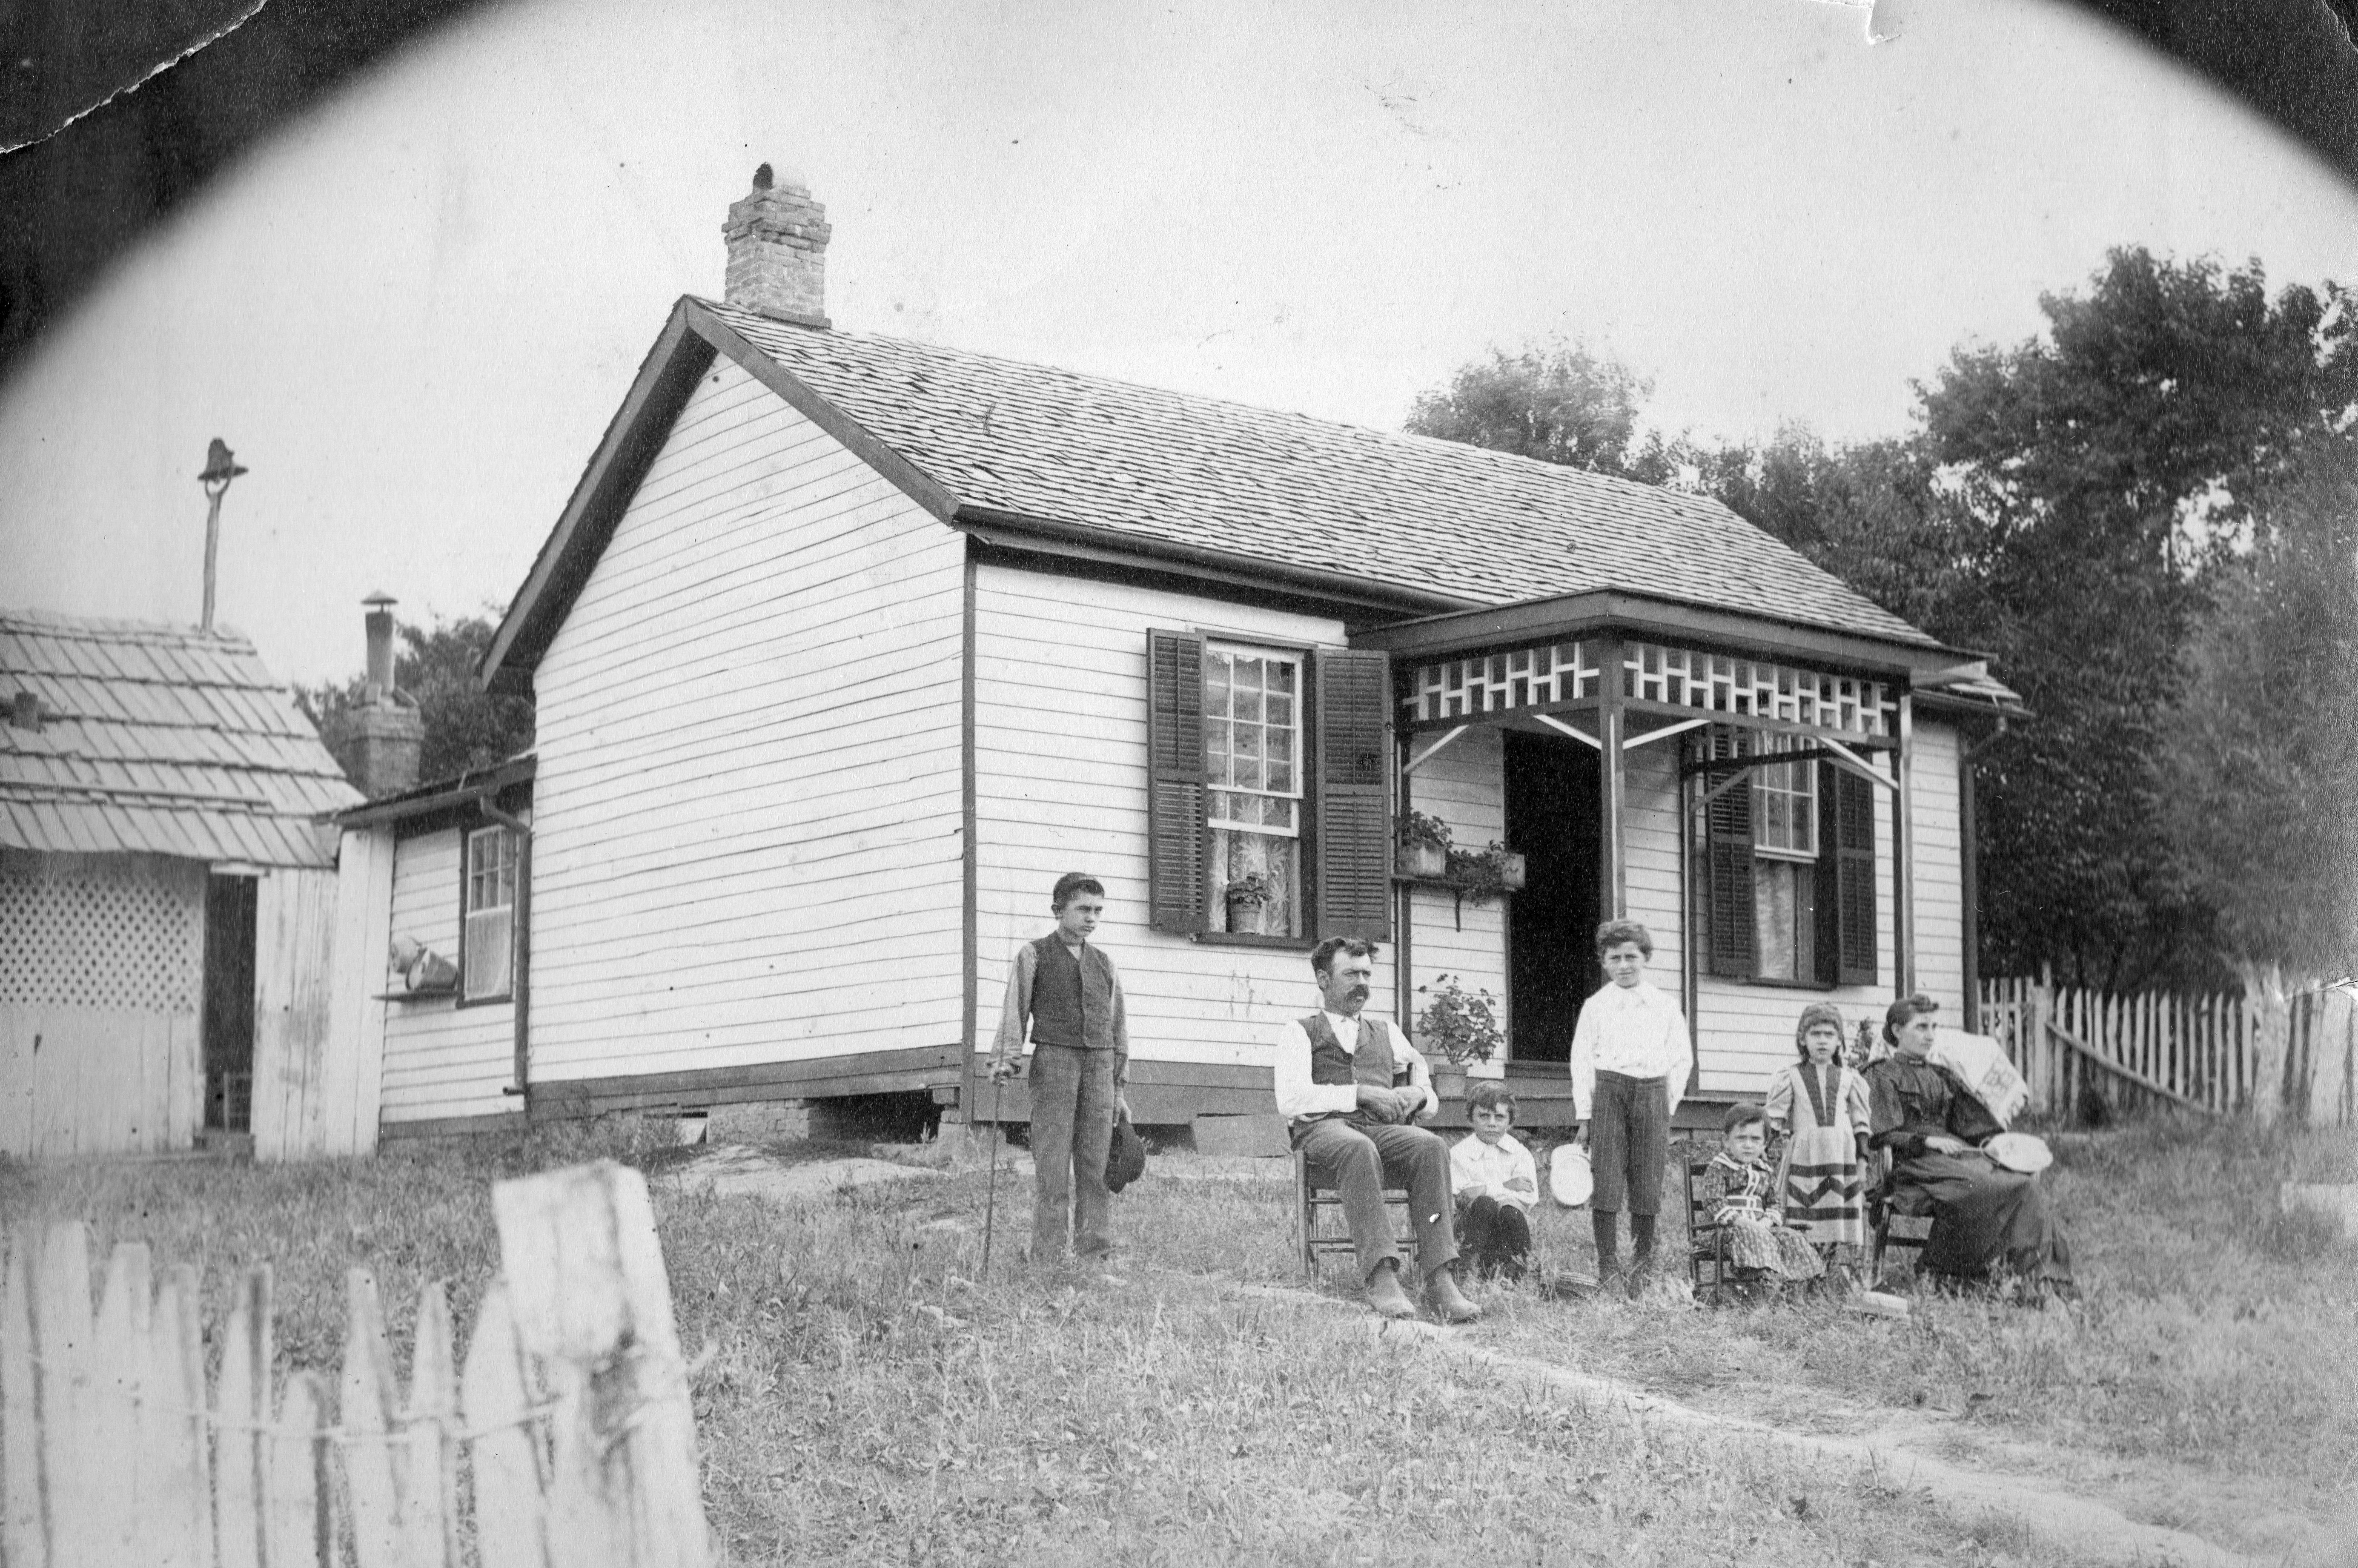 Indiana gibson county francisco - John Henry And Mary Elizabeth Greek S Home In Francisco Gibson County Indiana Circa 1893